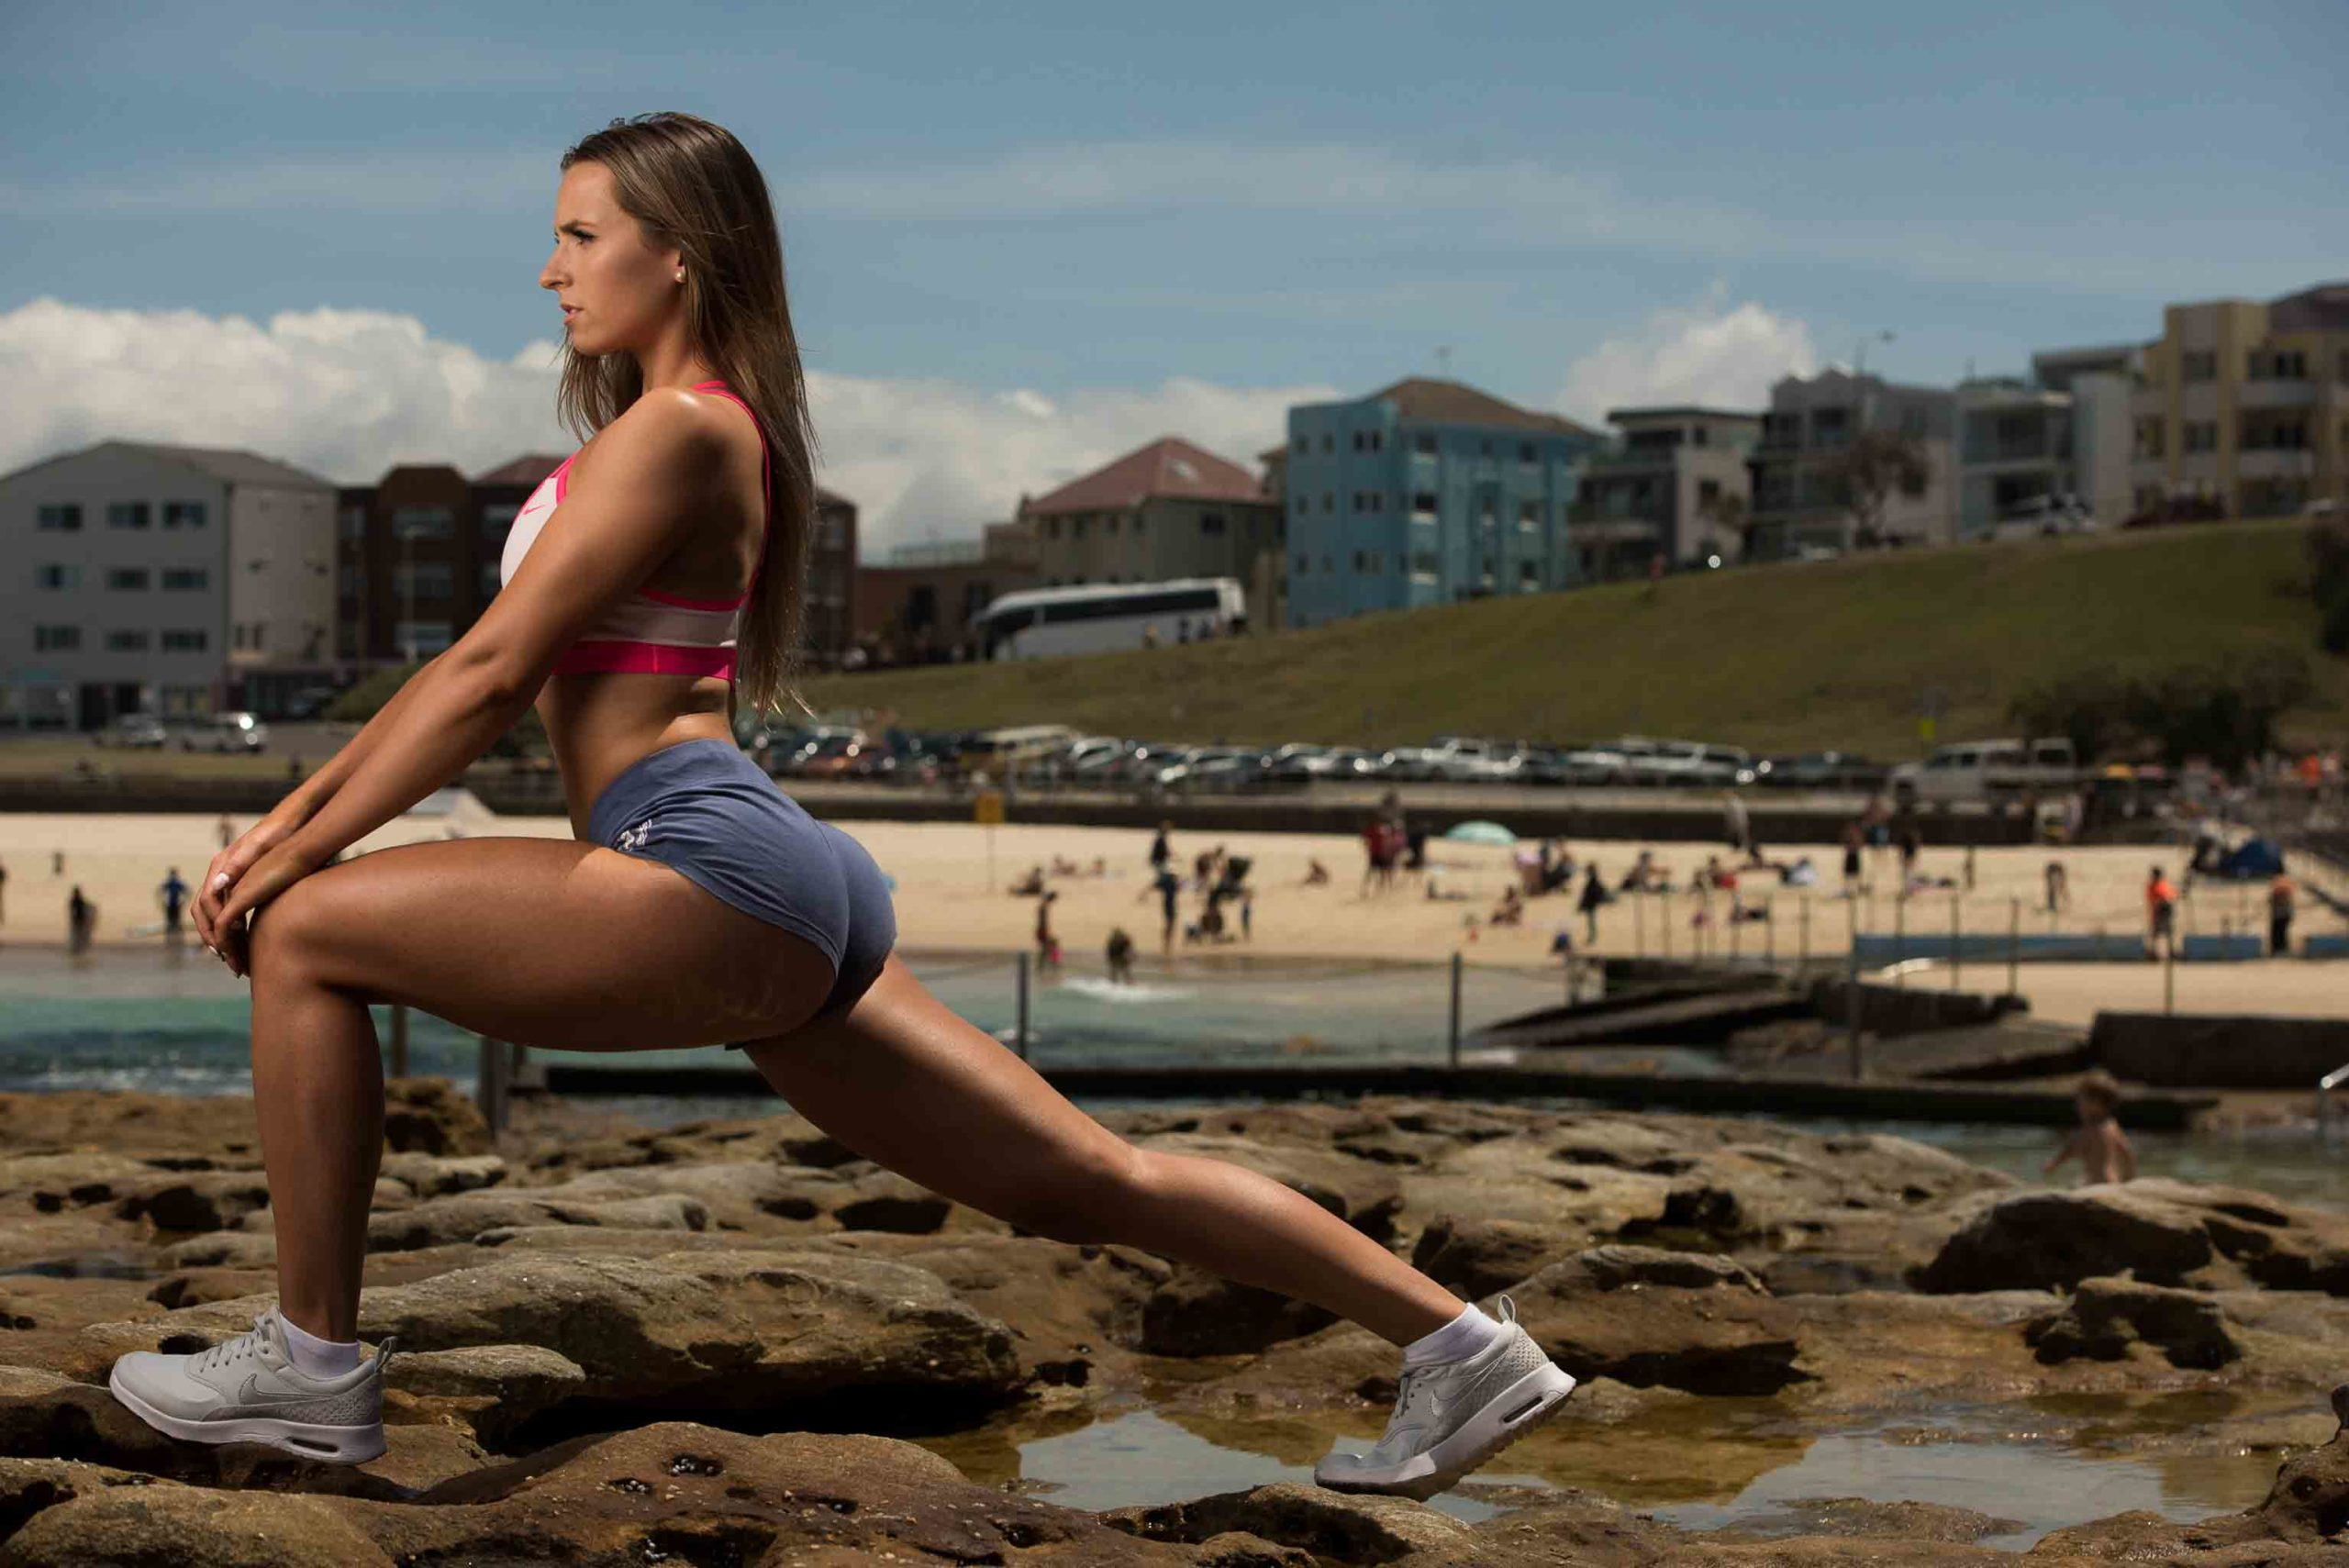 Maya Stretching at Bondi Beach